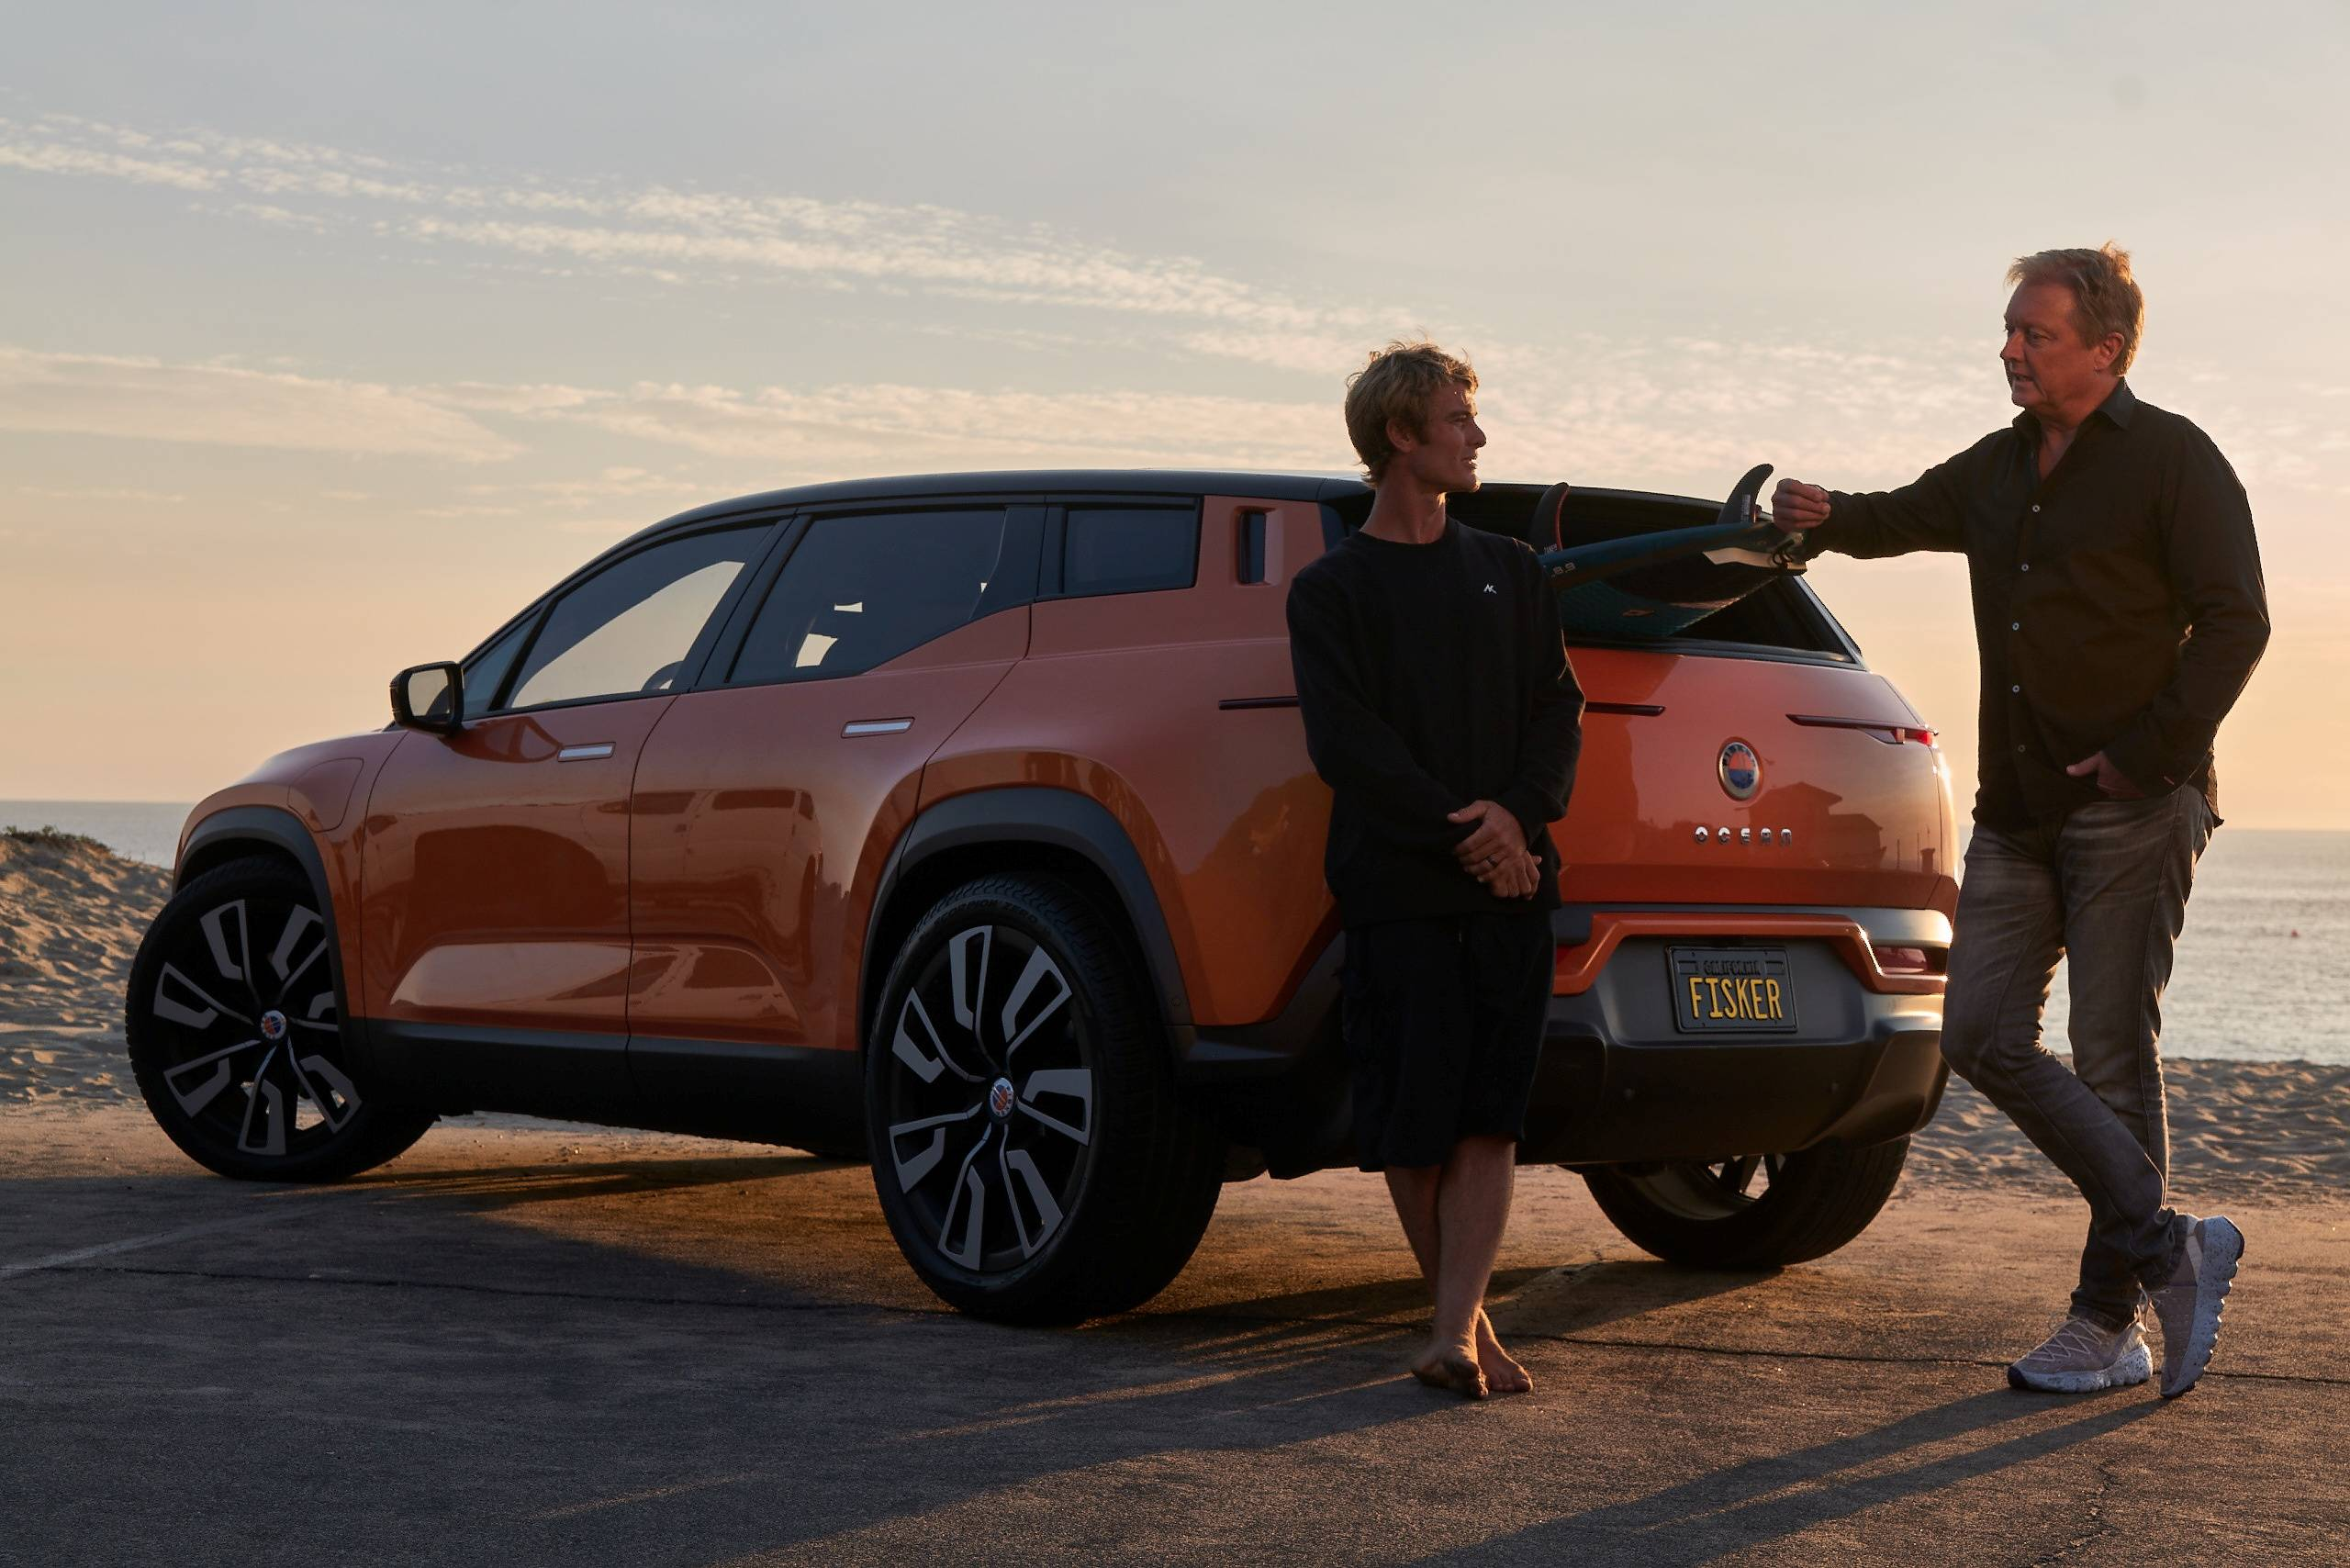 The Fisker Ocean electric SUV is at least two years away from production in a project heavily dependent on nailing down deals with partners who will build the car and provide key components. | FISKER INC. / VIA REUTERS